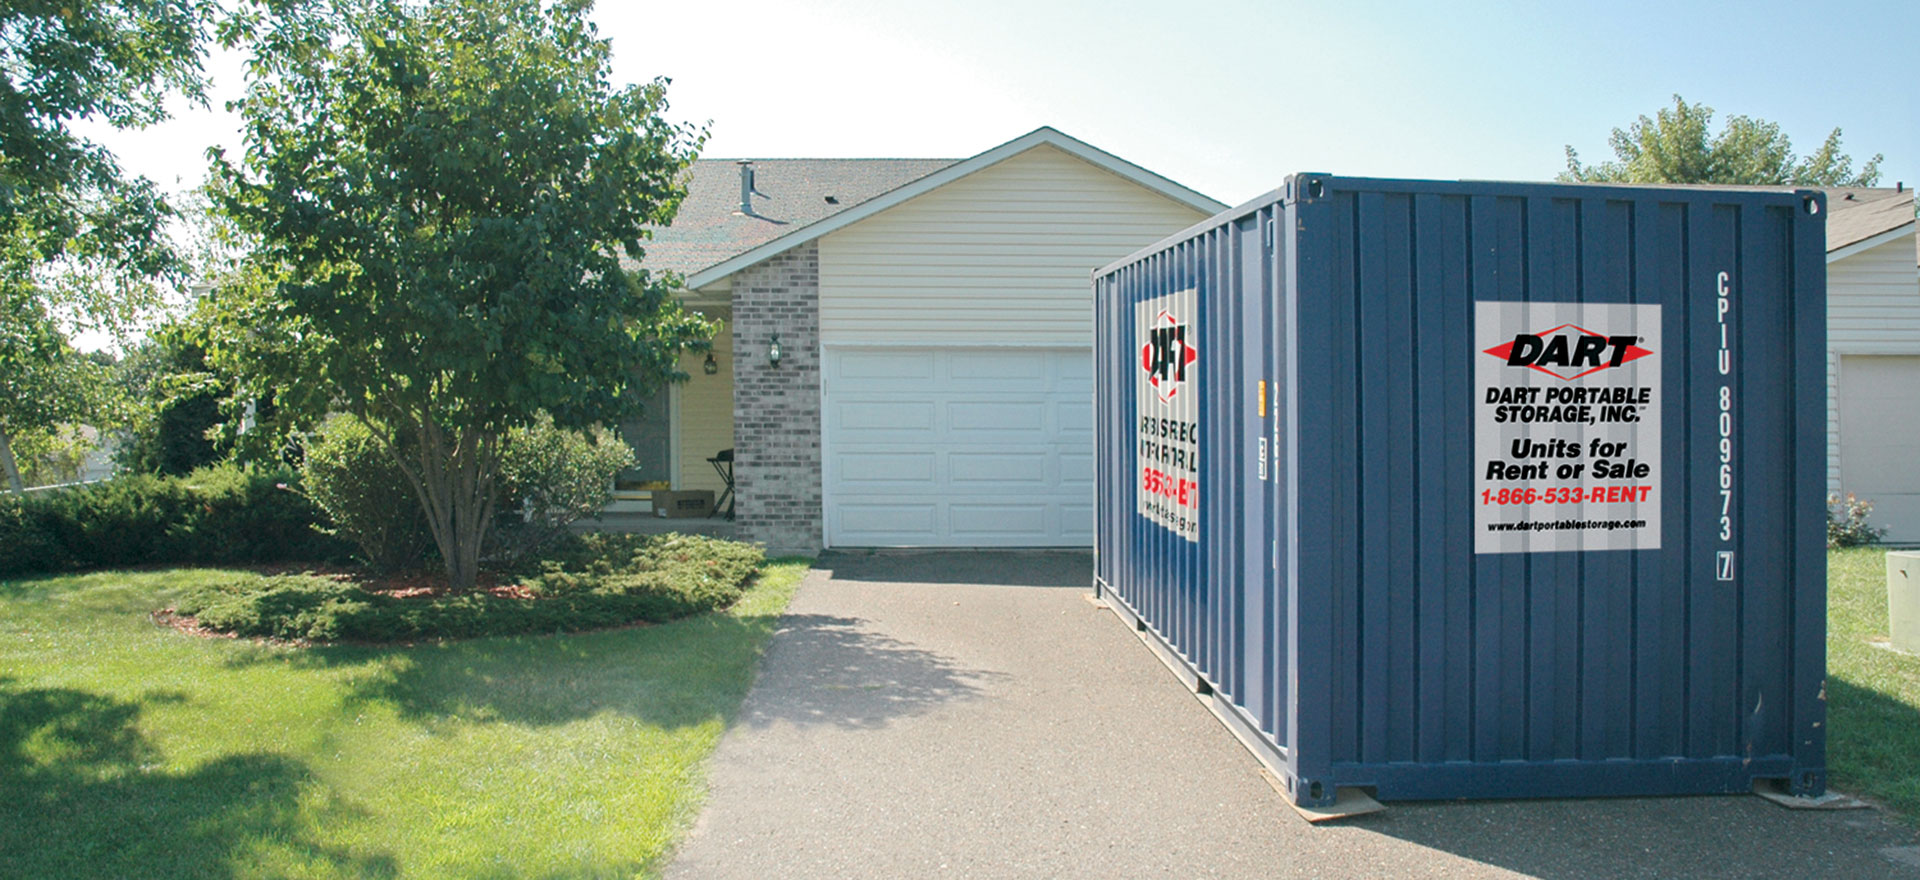 Temporary home storage solutions & Minneapolis St Paul Portable Storage Solutions | Dart